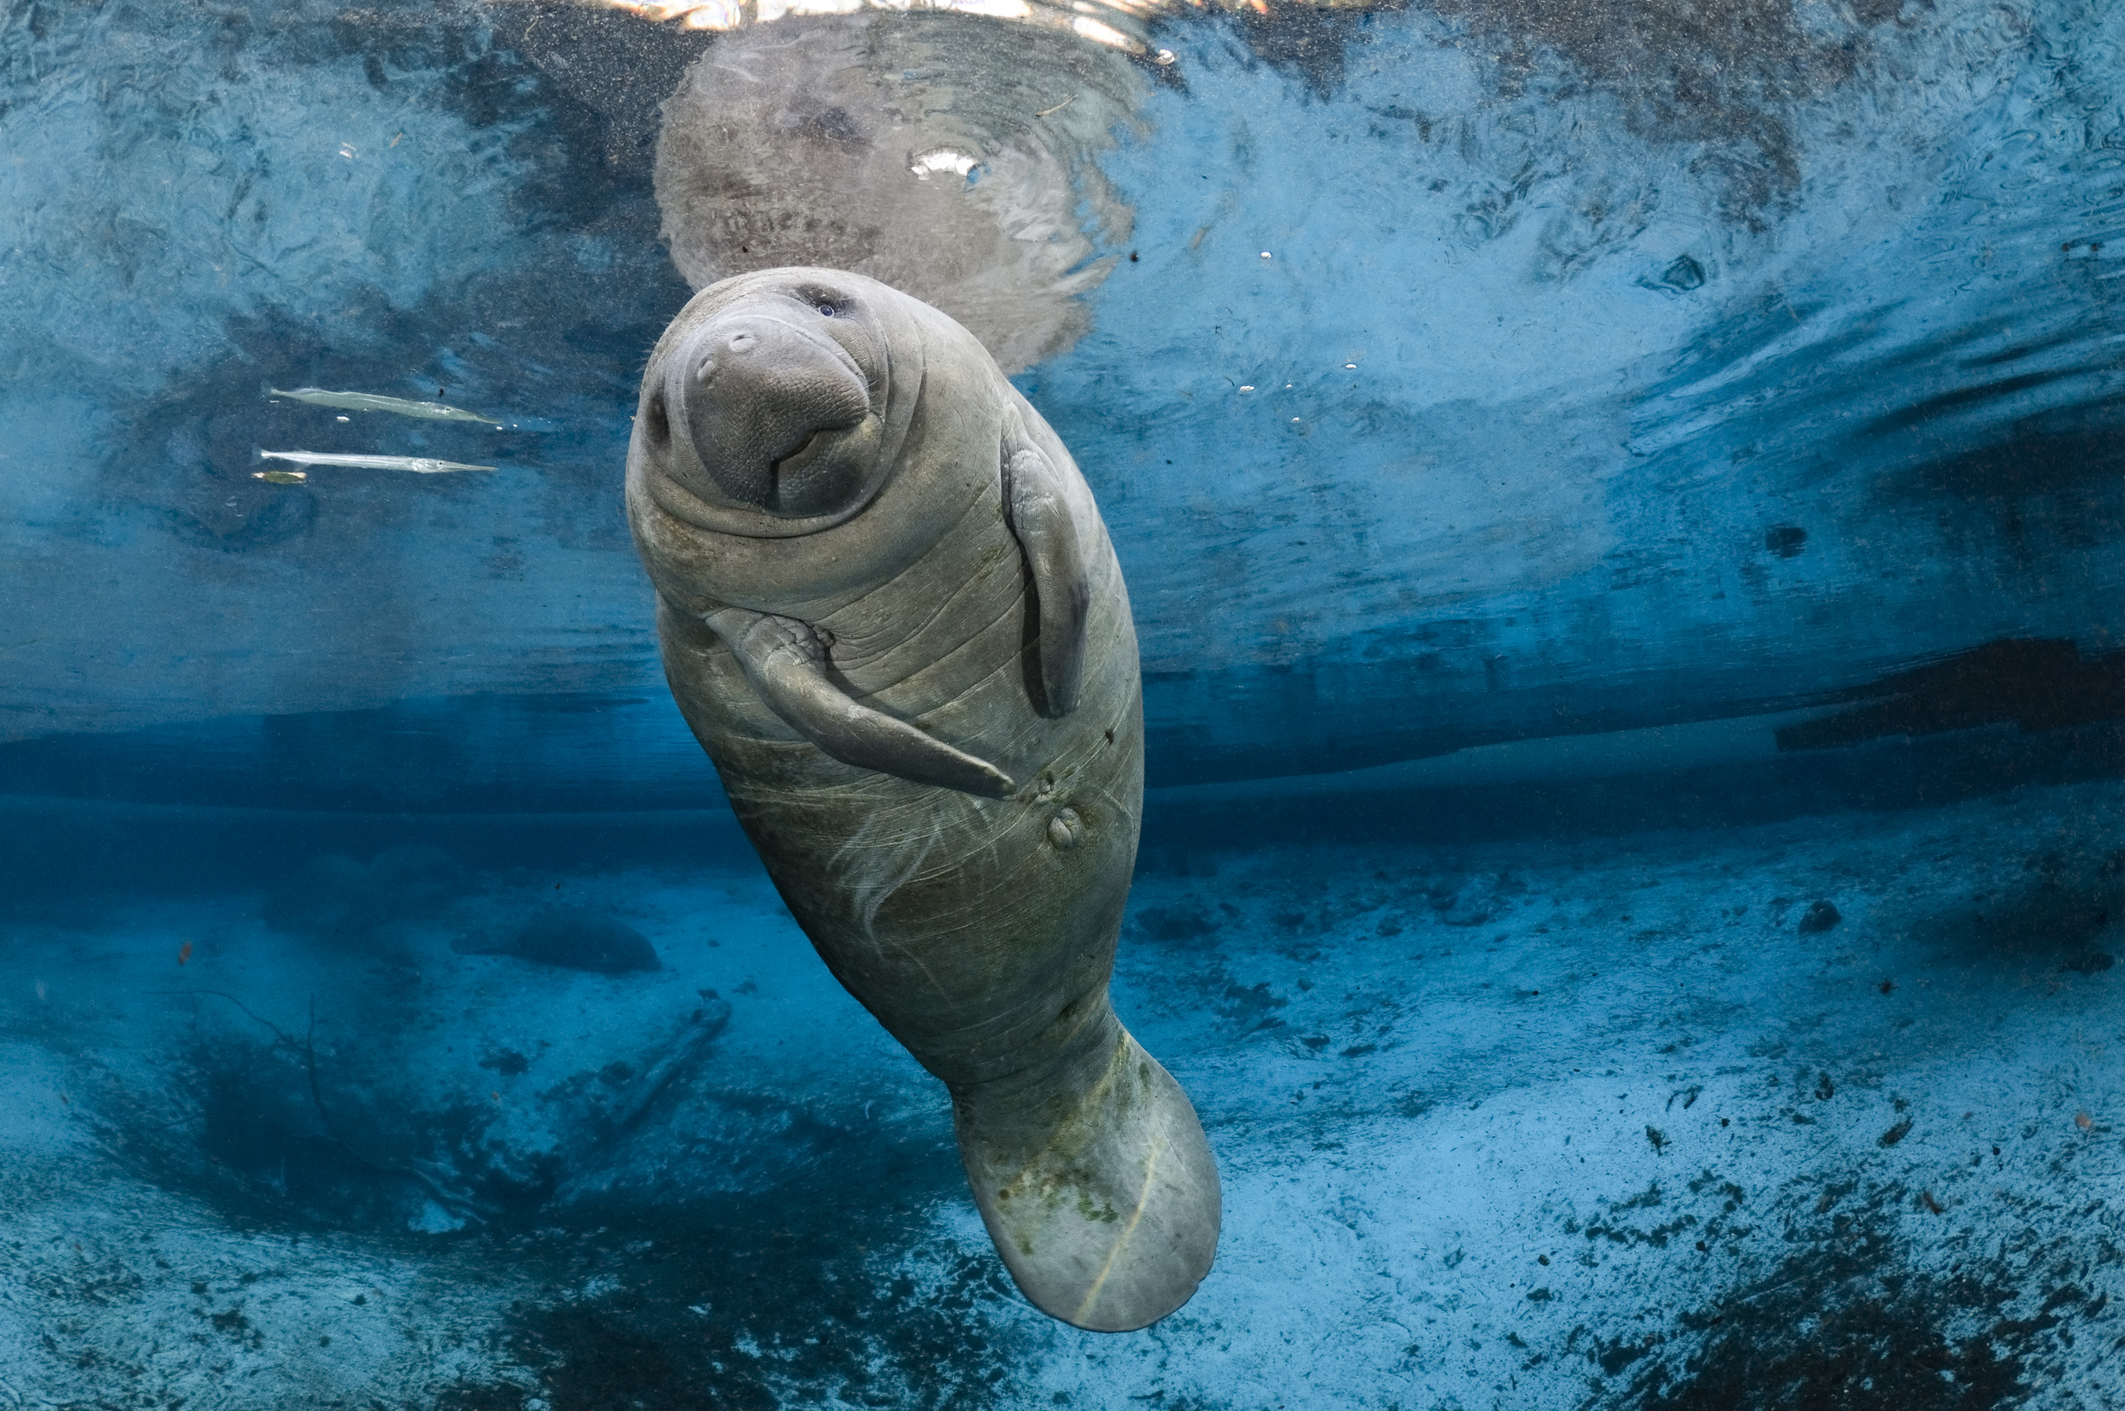 On one of the coldest Florida winter days in history, a young male Florida manatee calf floats and enjoys the warmth over a blue freshwater spring outflow.